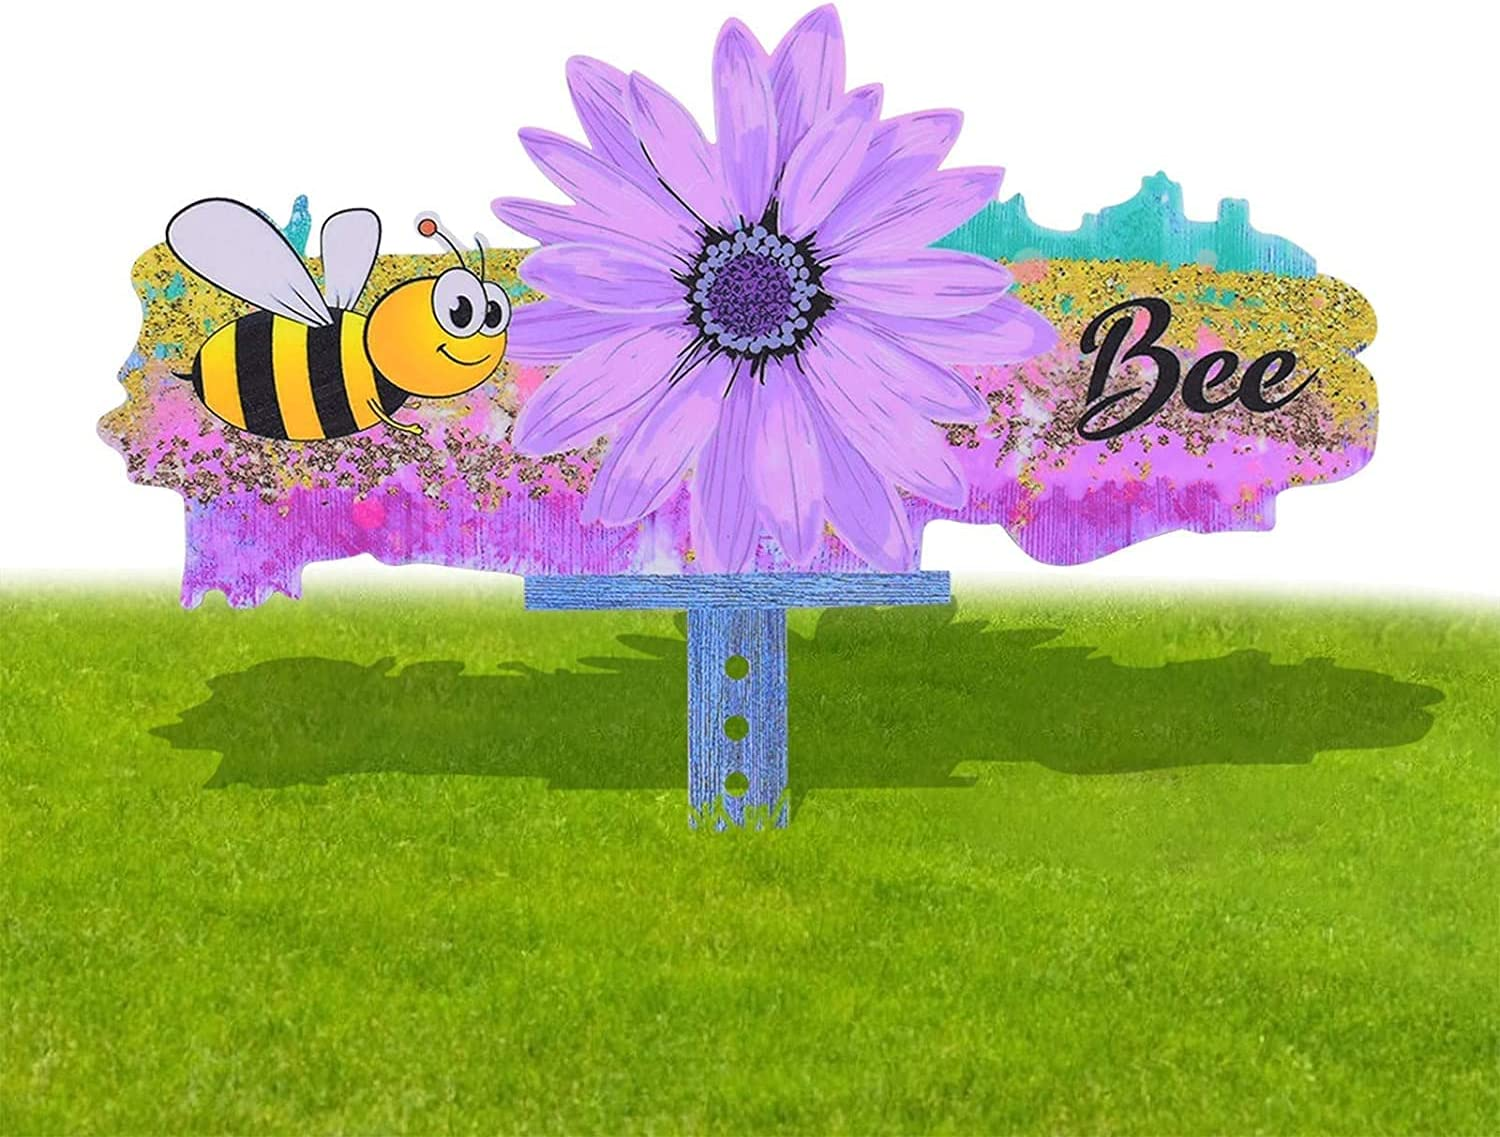 ZHANGRONG Decorative Garden Stakes Bee Gnome,Bee Festival Faceless Doll to Insert Decorative Garden Plug-in,Gnomes Yard Signs Stakes for Garden Yard Décor (F)